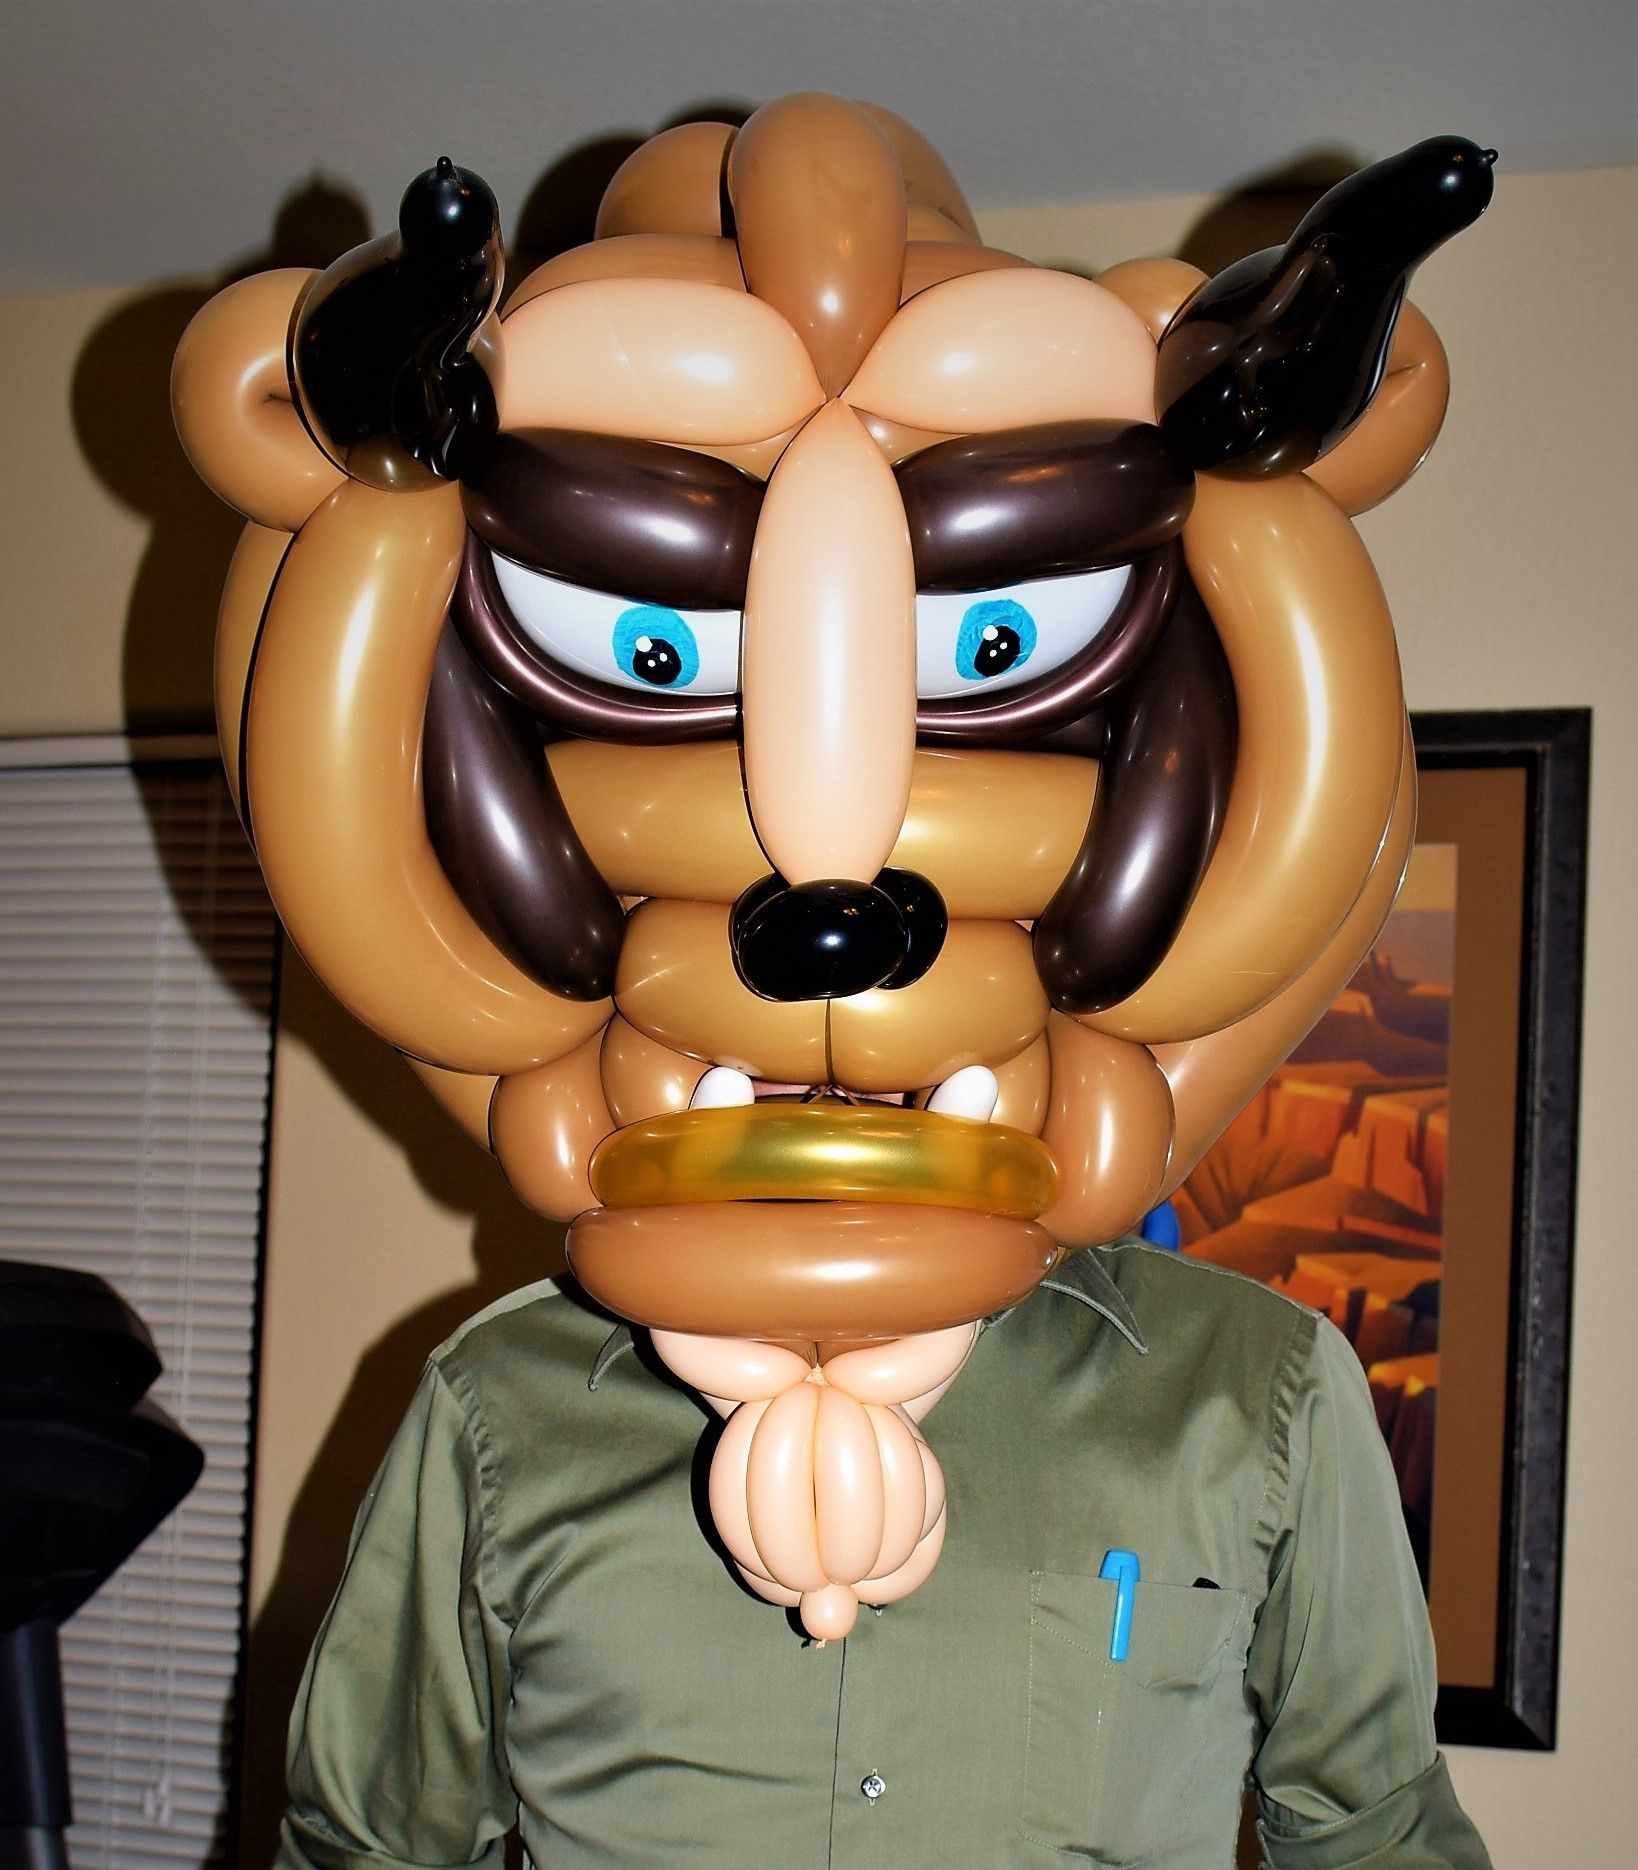 Beast Balloon Mask From Beauty And The Perfect For Birthday Party Costumed Event More Made By Las Vegas Best Artist Jeremy Johnston